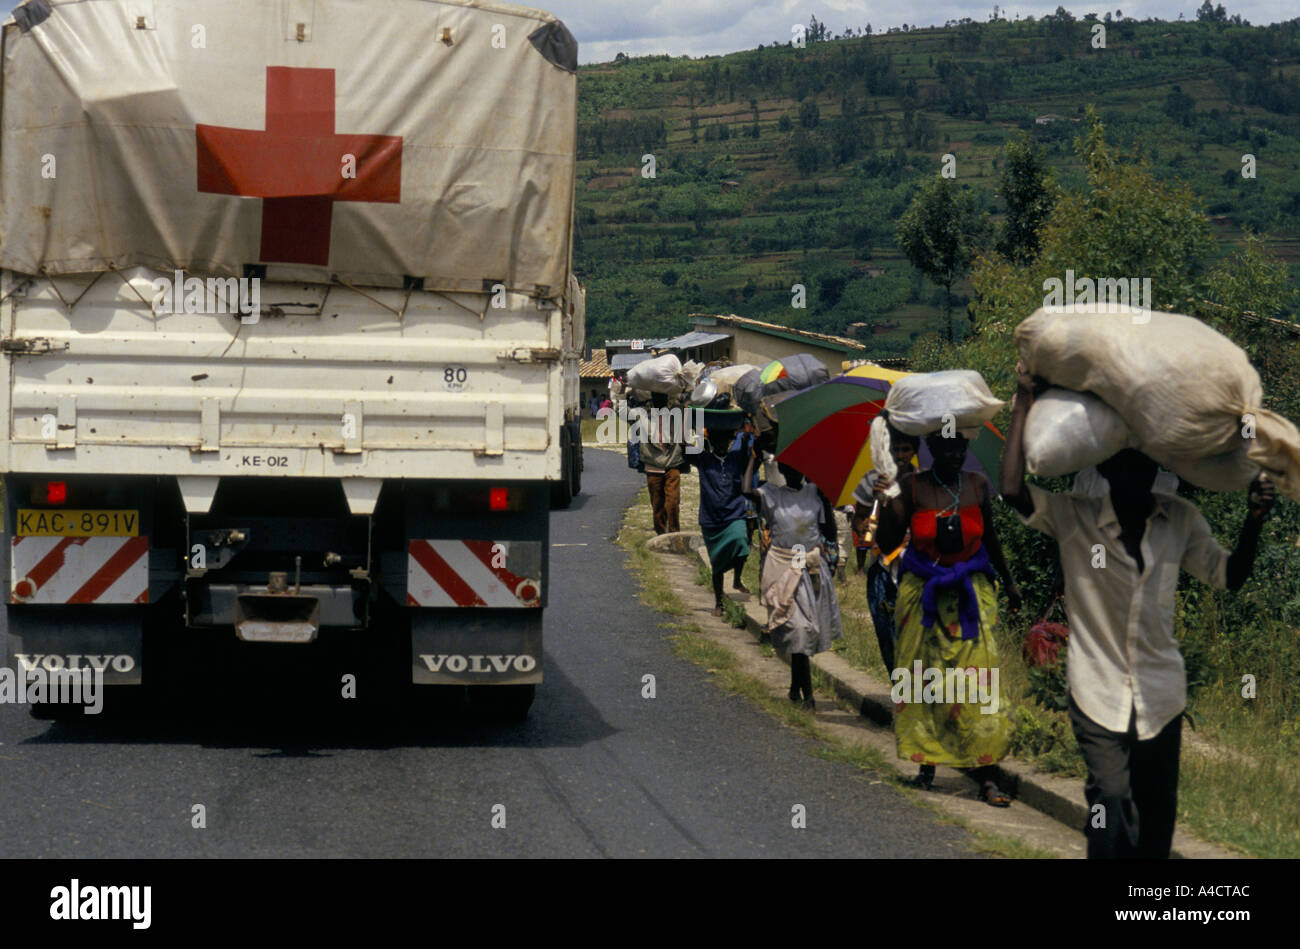 'RWANDAN CIVIL WAR', INTERNATIONAL RED CROSS CONVOY BRINGING IN MEDICAL SUPPLIES TO KIGALI NEARS TOWN AS HUTUS FLEE IN THE OPPOSITE DIRECTION. april 1994 - Stock Image